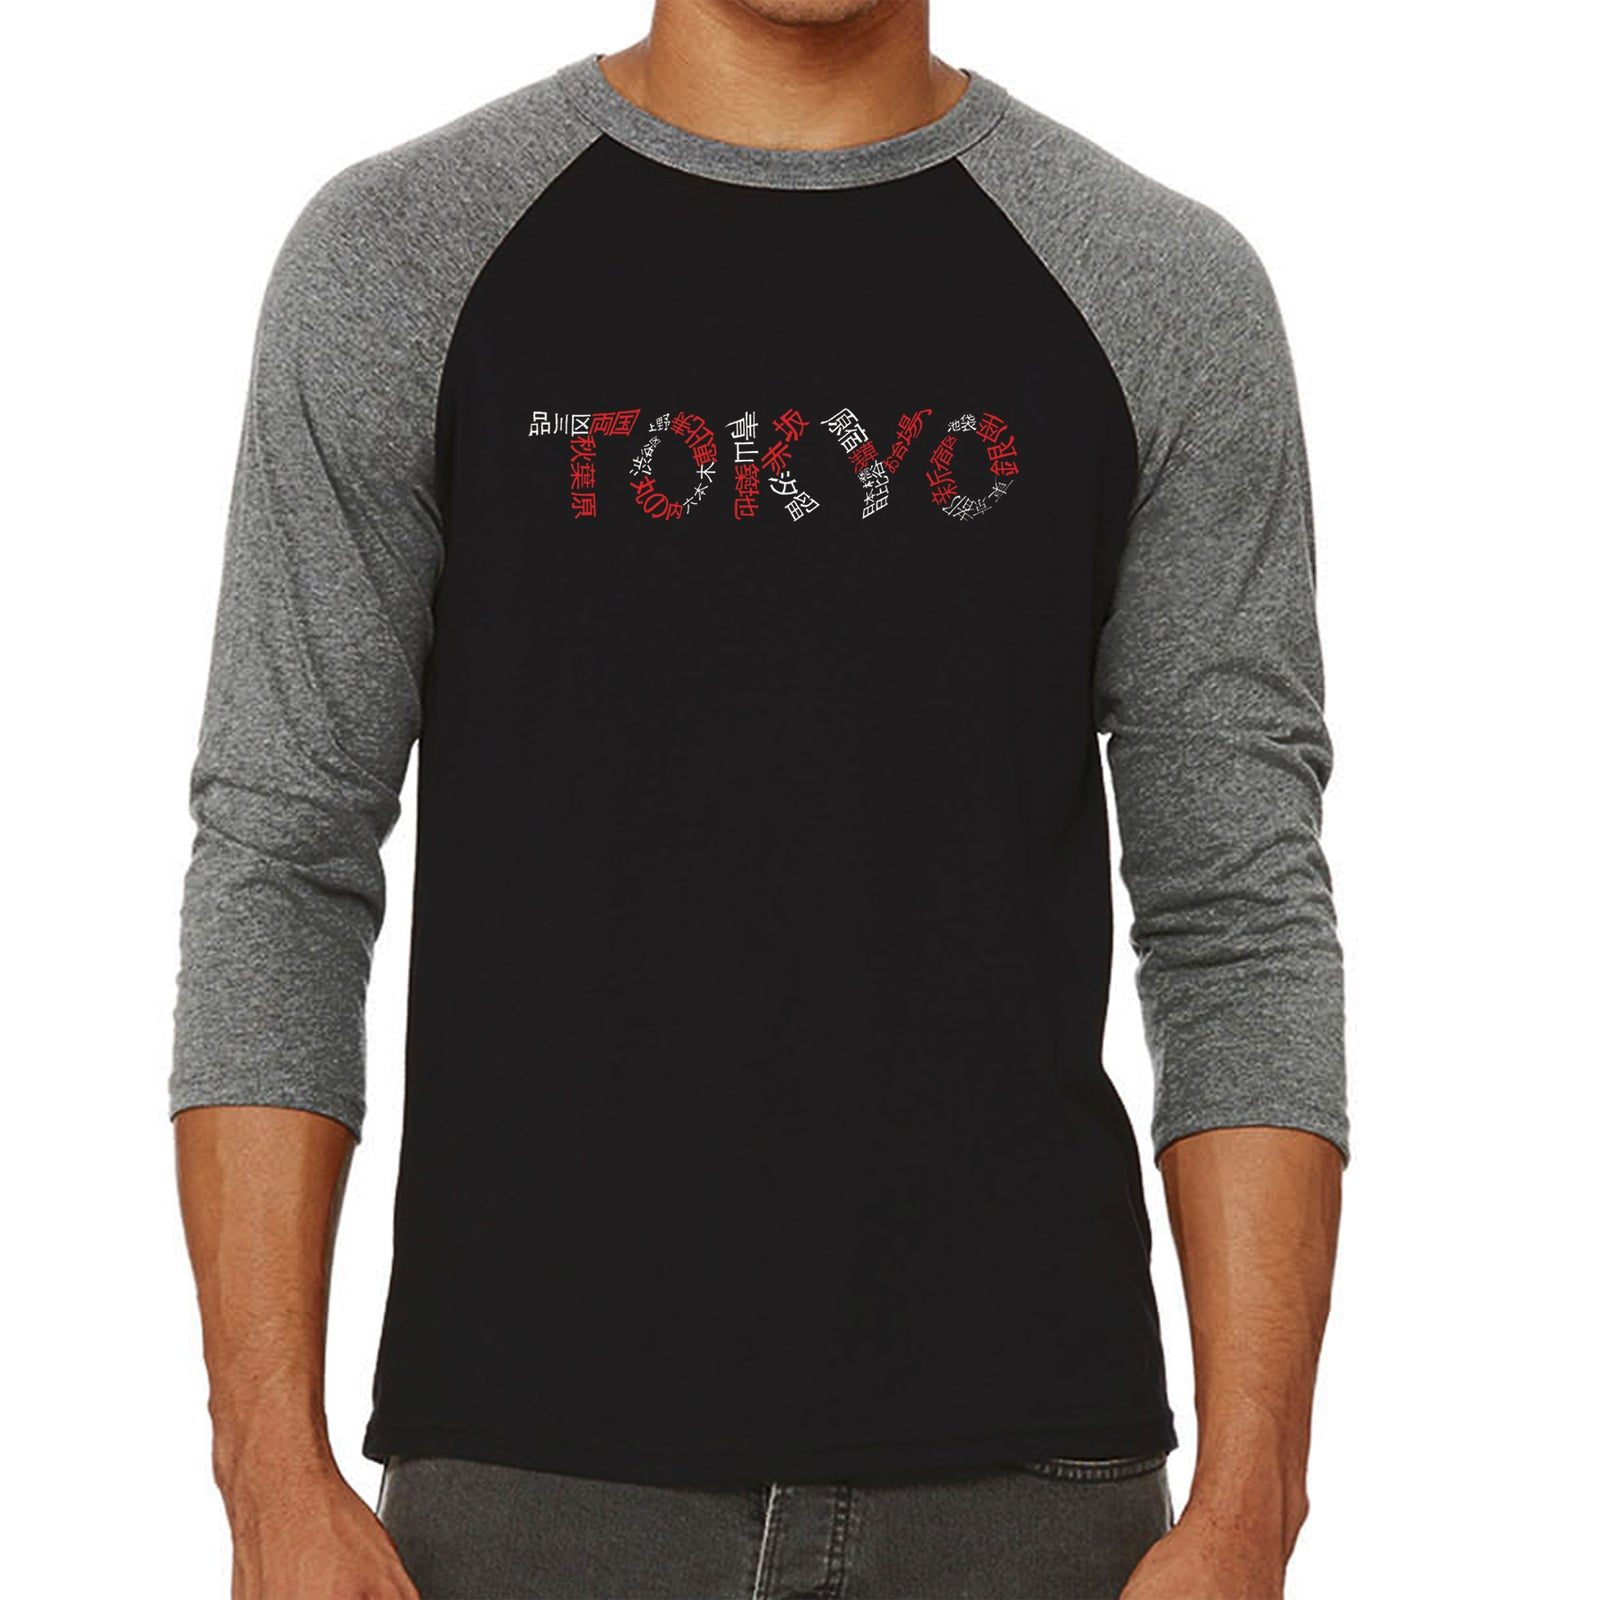 Men's Raglan Baseball Word Art T-shirt - THE NEIGHBORHOODS OF TOKYO